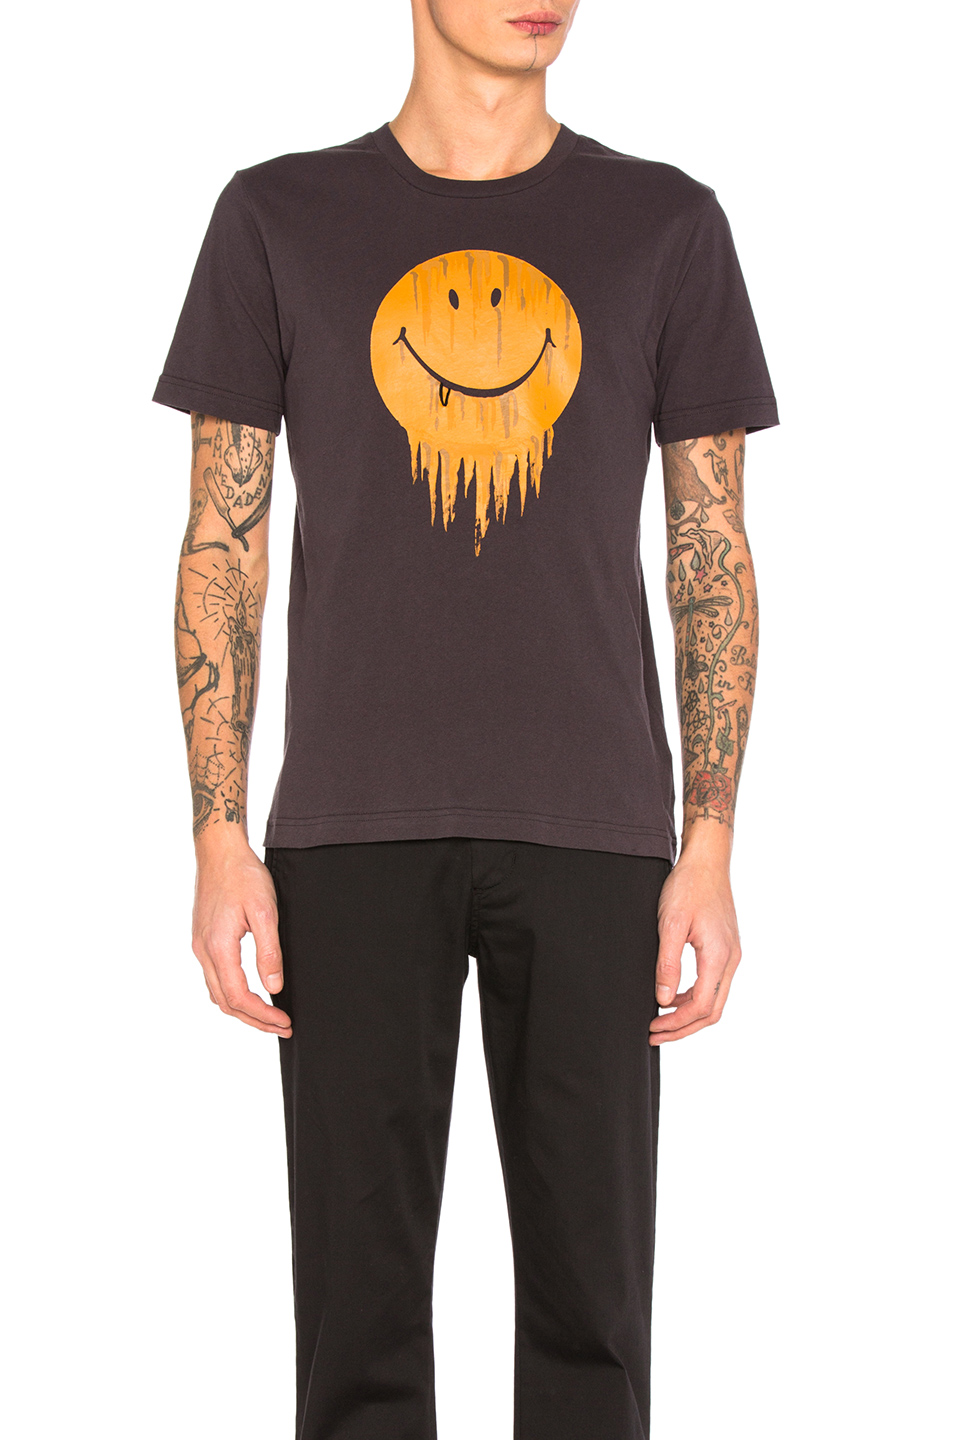 Coach 1941 Gnarly Face Tee in Black